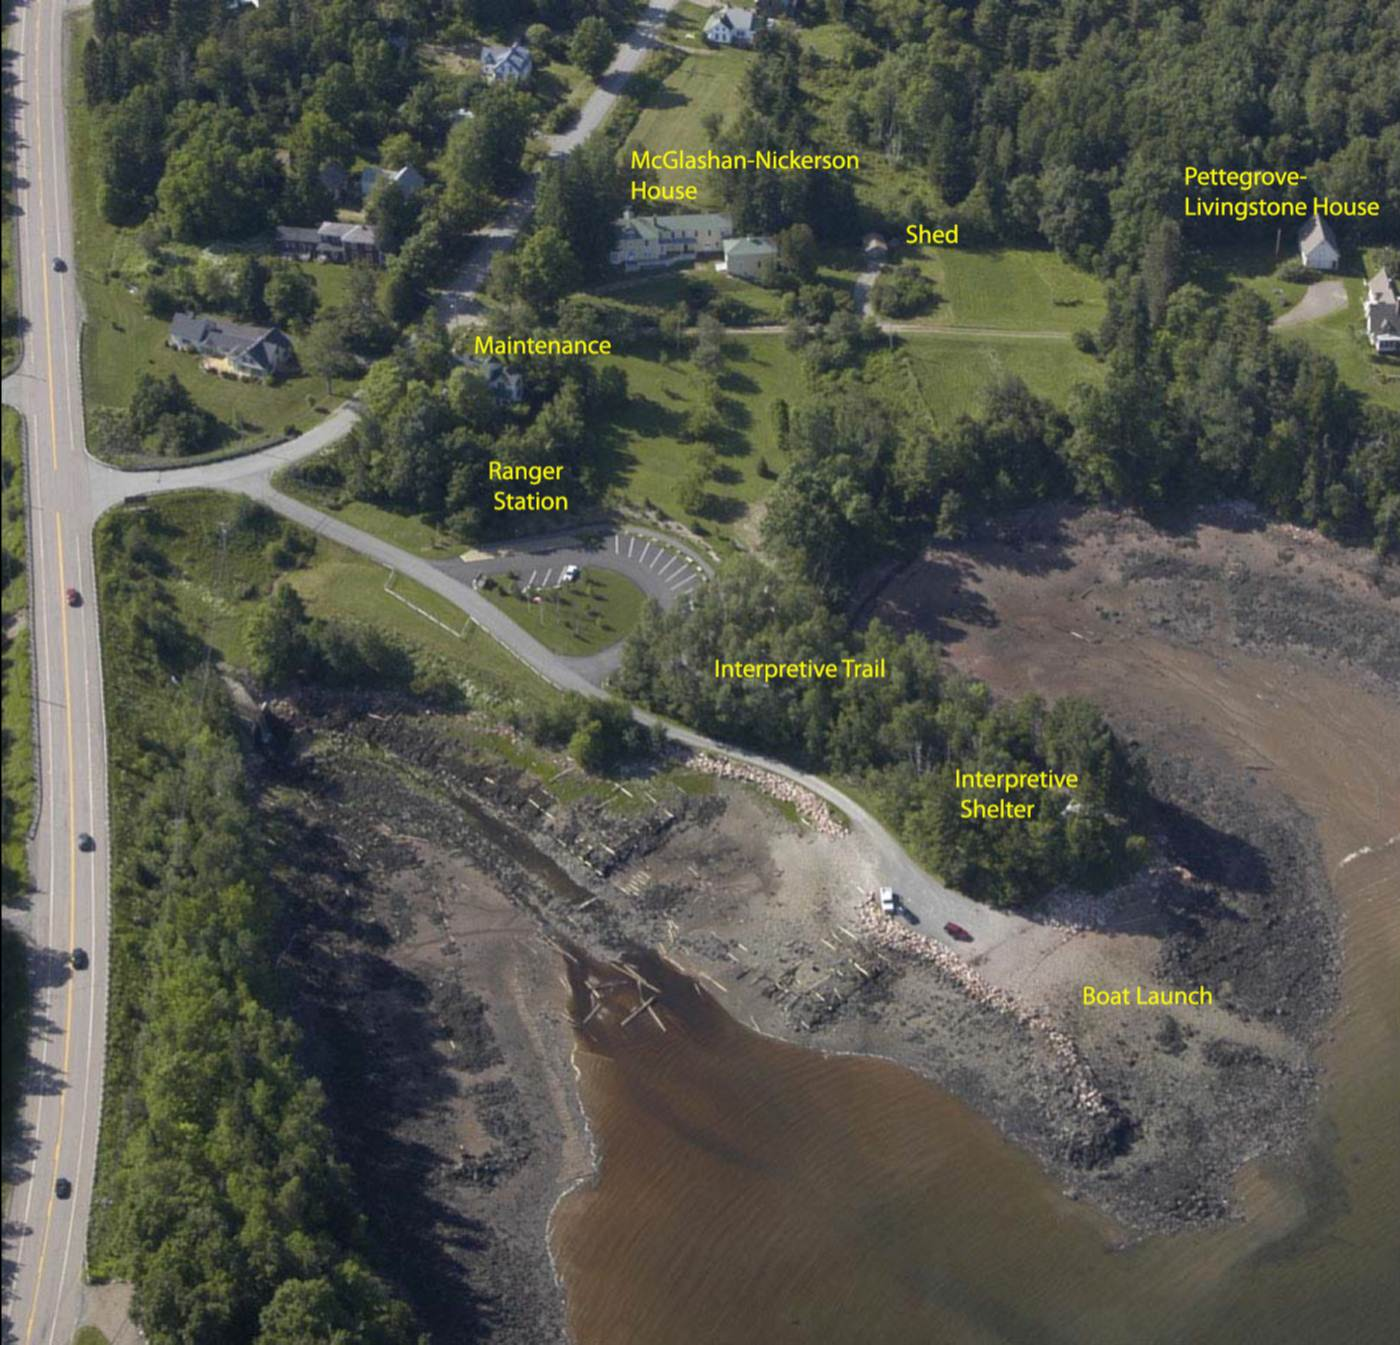 Aerial Site Image Annotated.jpg